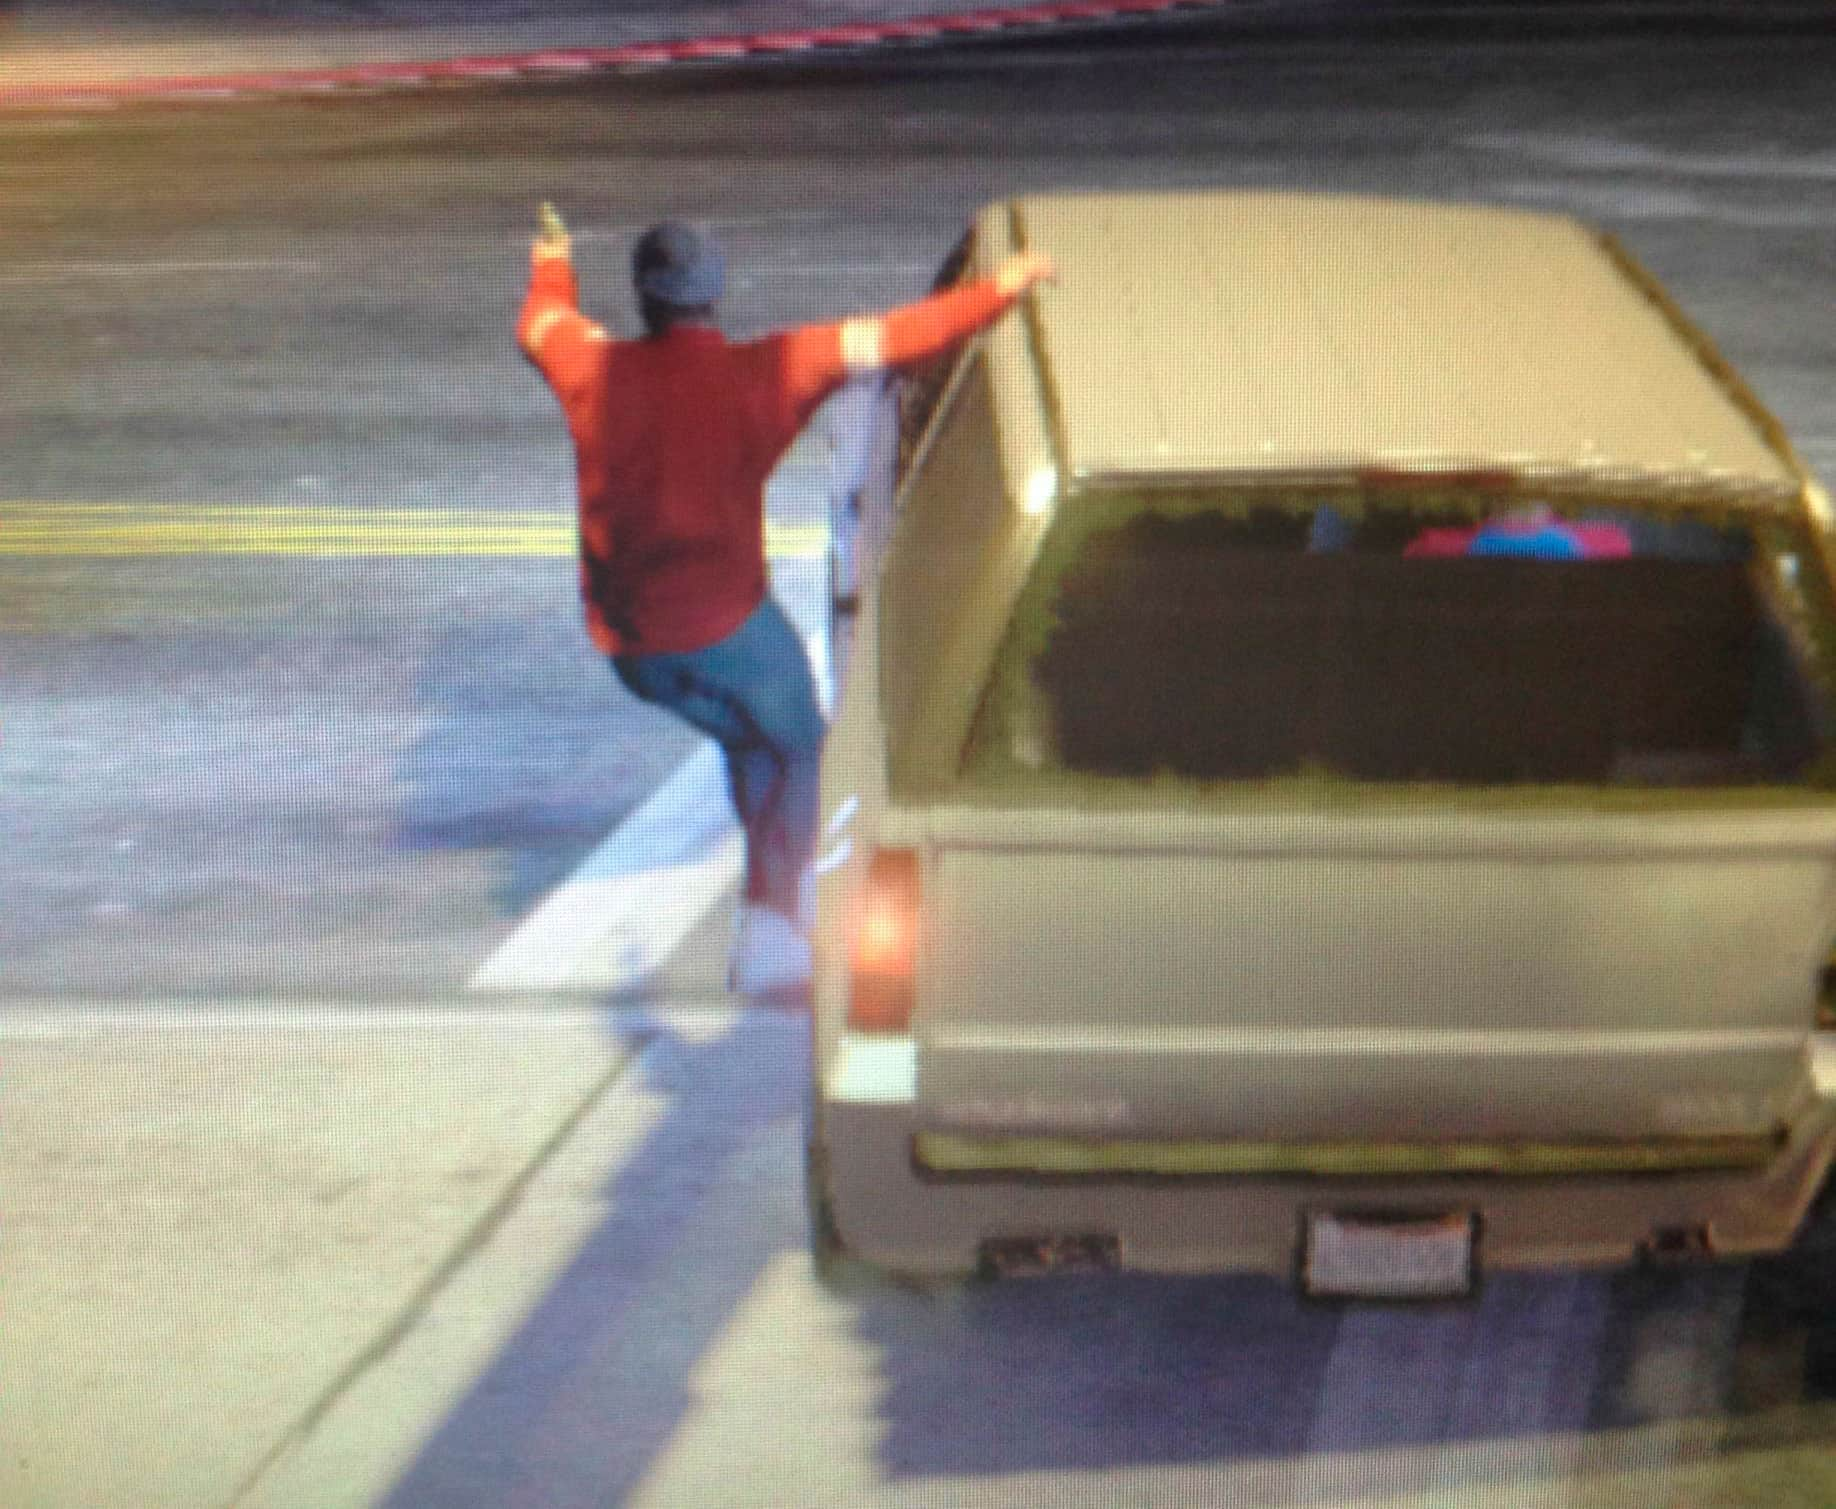 Grand Theft Auto Online Hints & Tips: Must-Know Info For